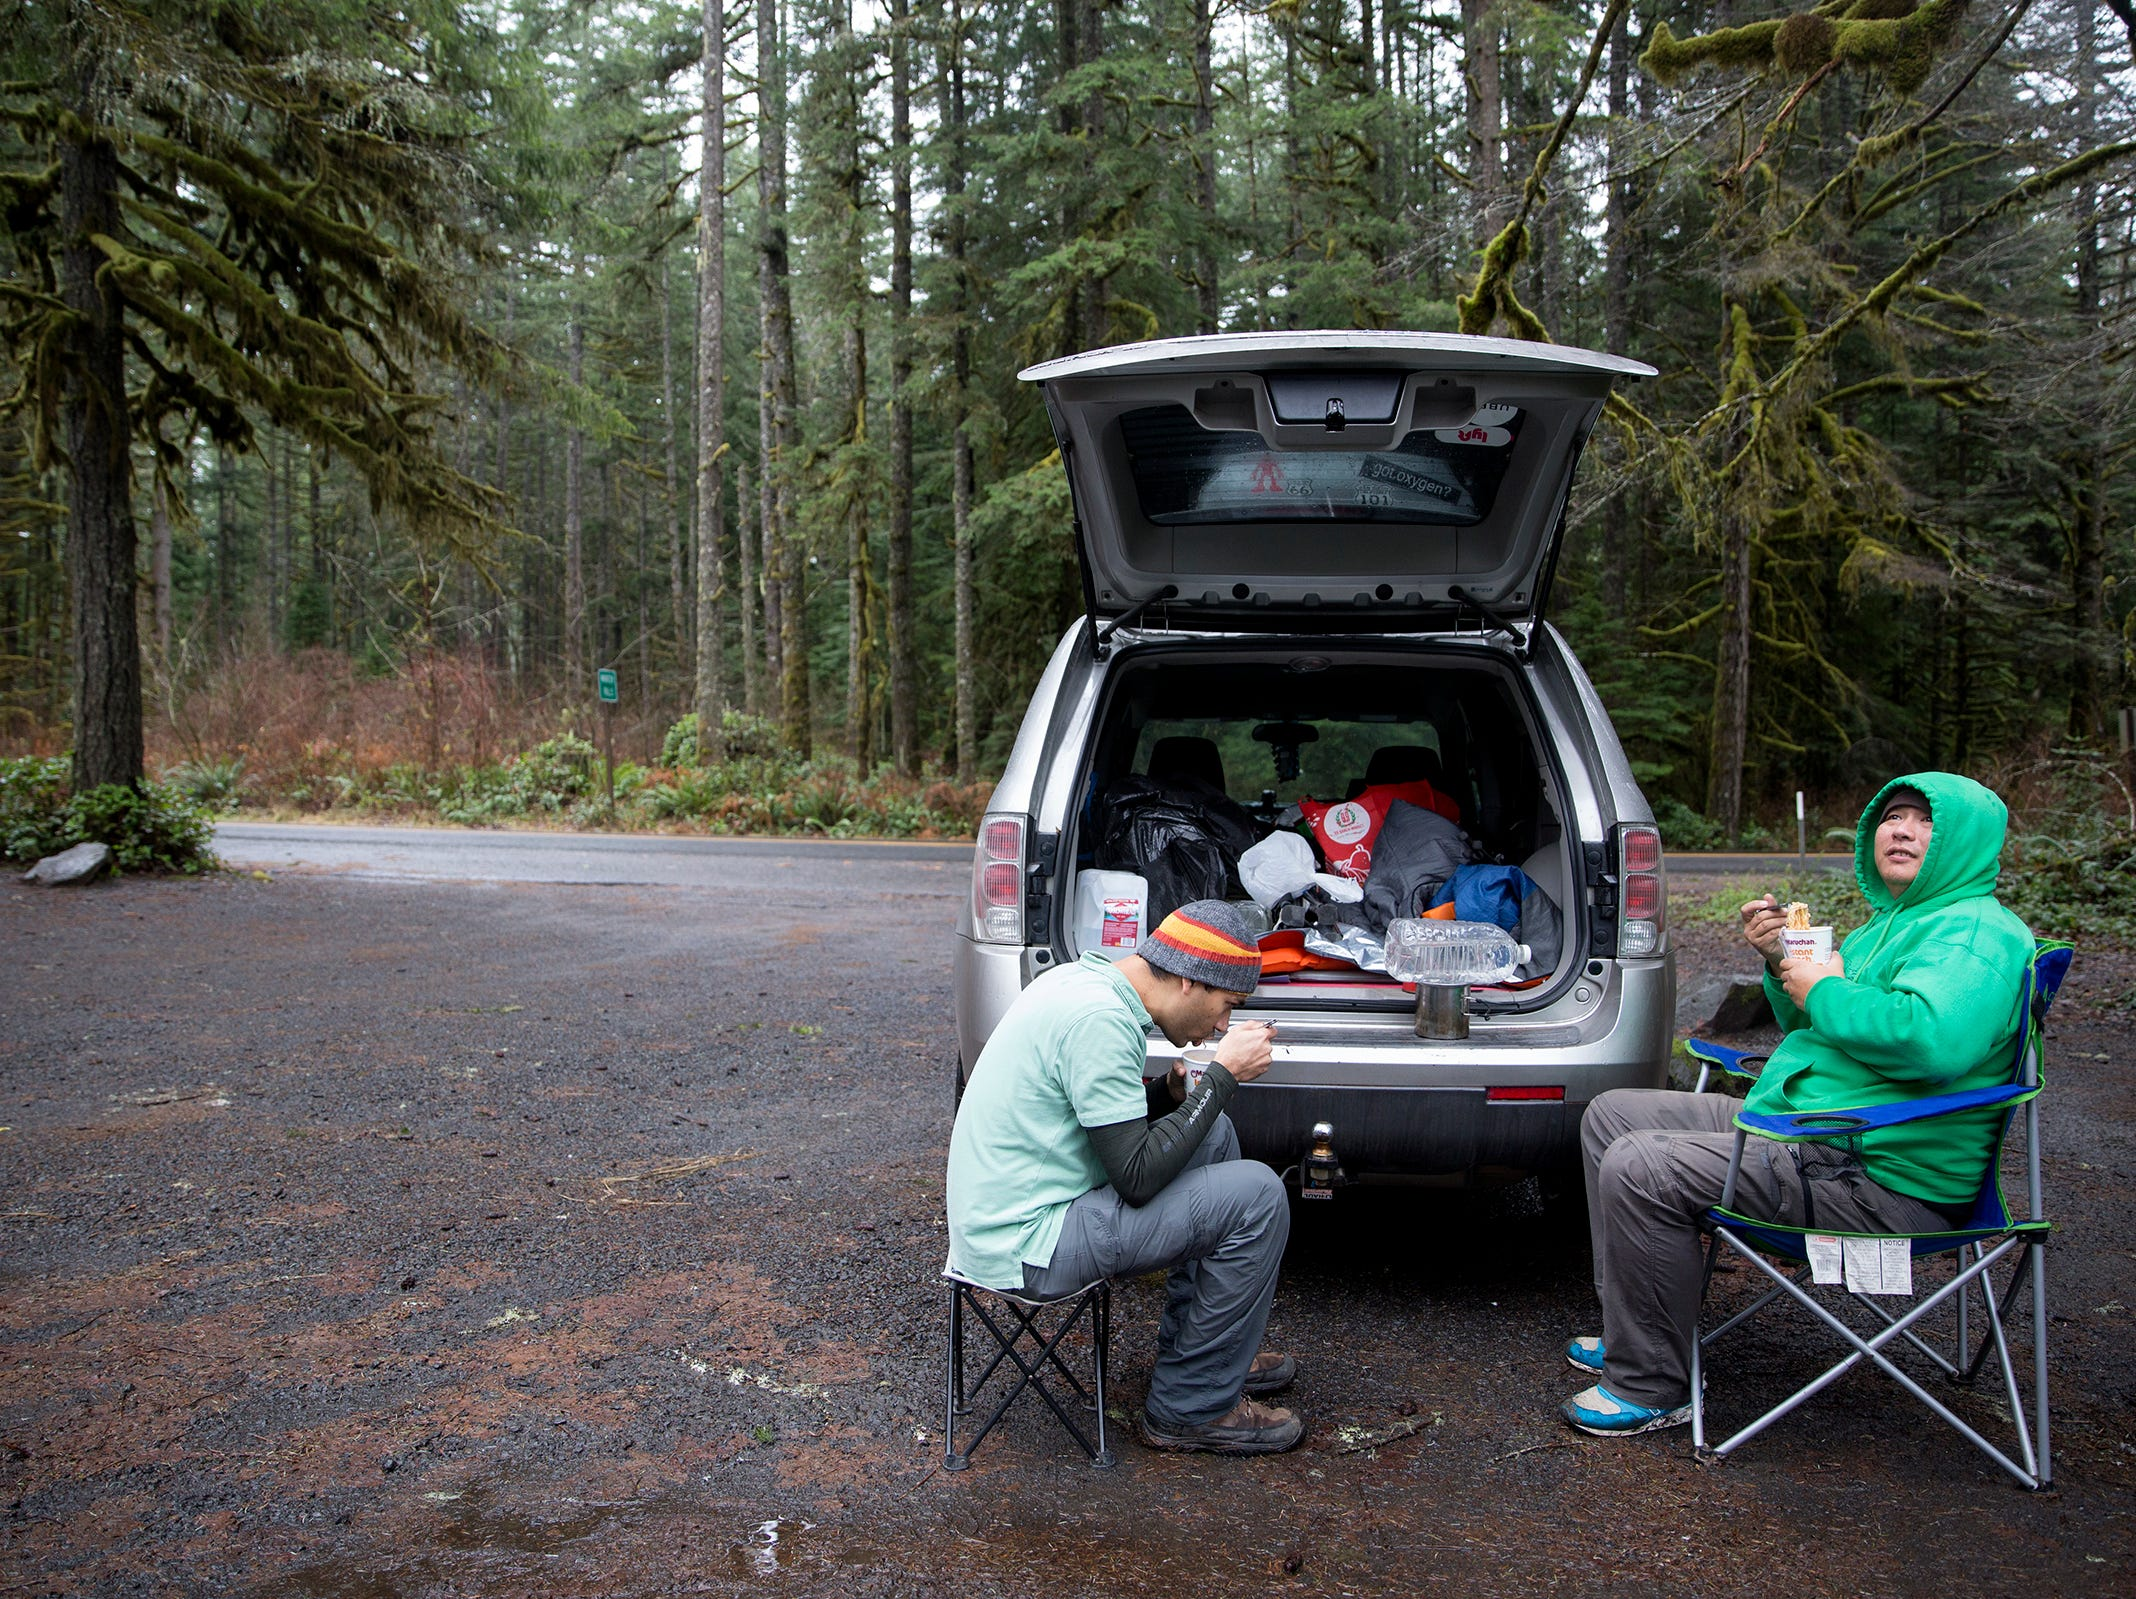 Prakash Jij and Richard Leu, from California, stop to eat Ramen noodles at Silver Falls State Park in Sublimity on Wednesday, Dec. 26, 2018. The two are on a road trip to see different state parks around Oregon.